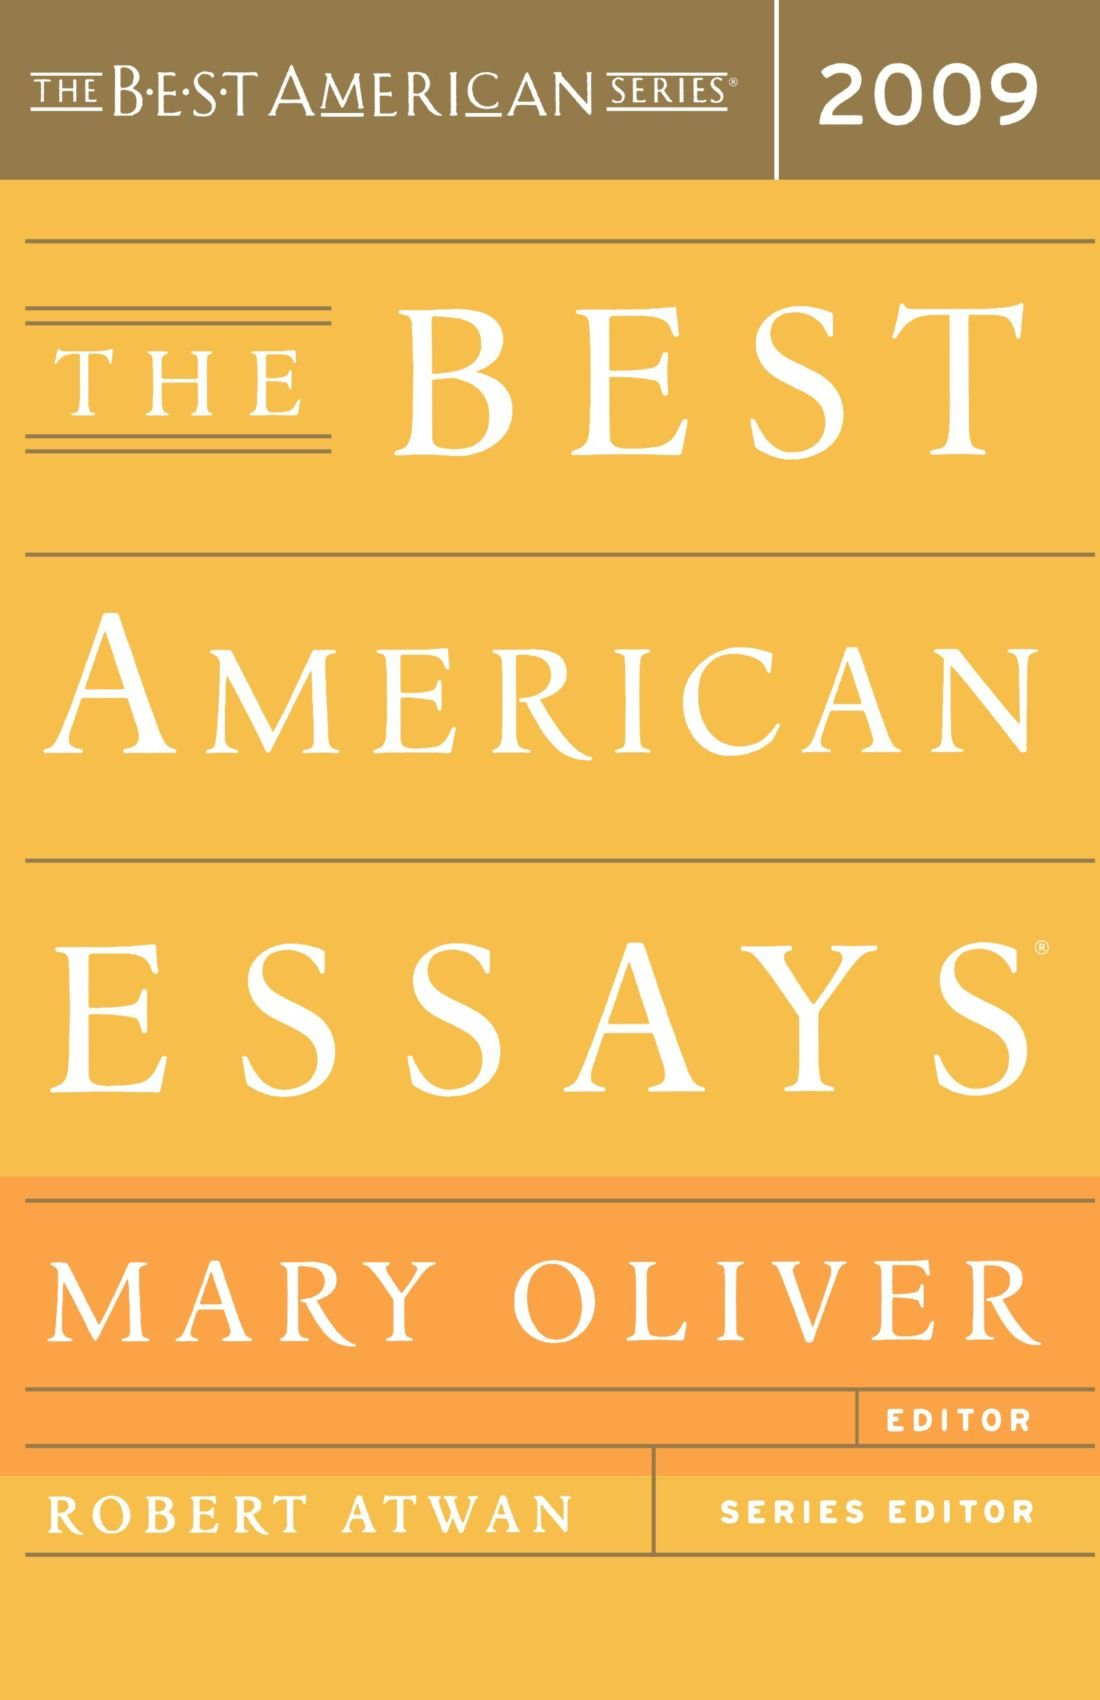 008 617qb5slhfl Essay Example The Best American Wonderful Essays 2018 Pdf 2017 Table Of Contents 2015 Free Full